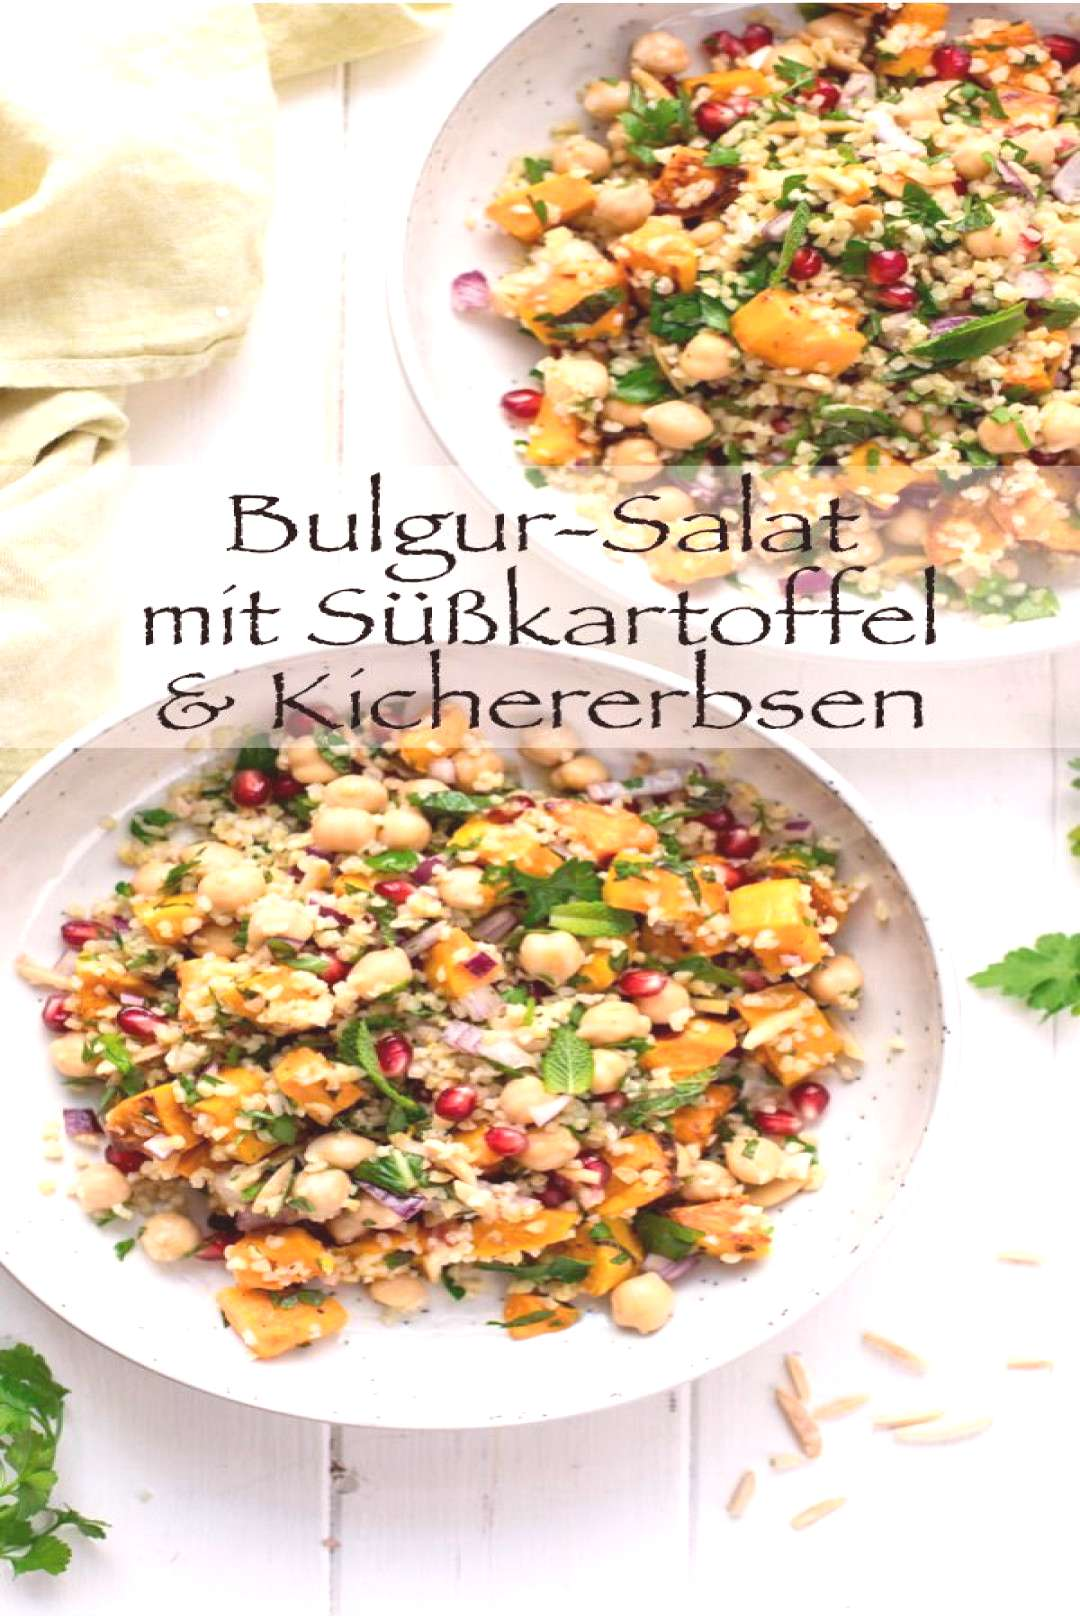 Bulgur Salad with Sweet Potato, Chickpeas, Herbs and Almonds This simple recipe for a Bulgur Salad